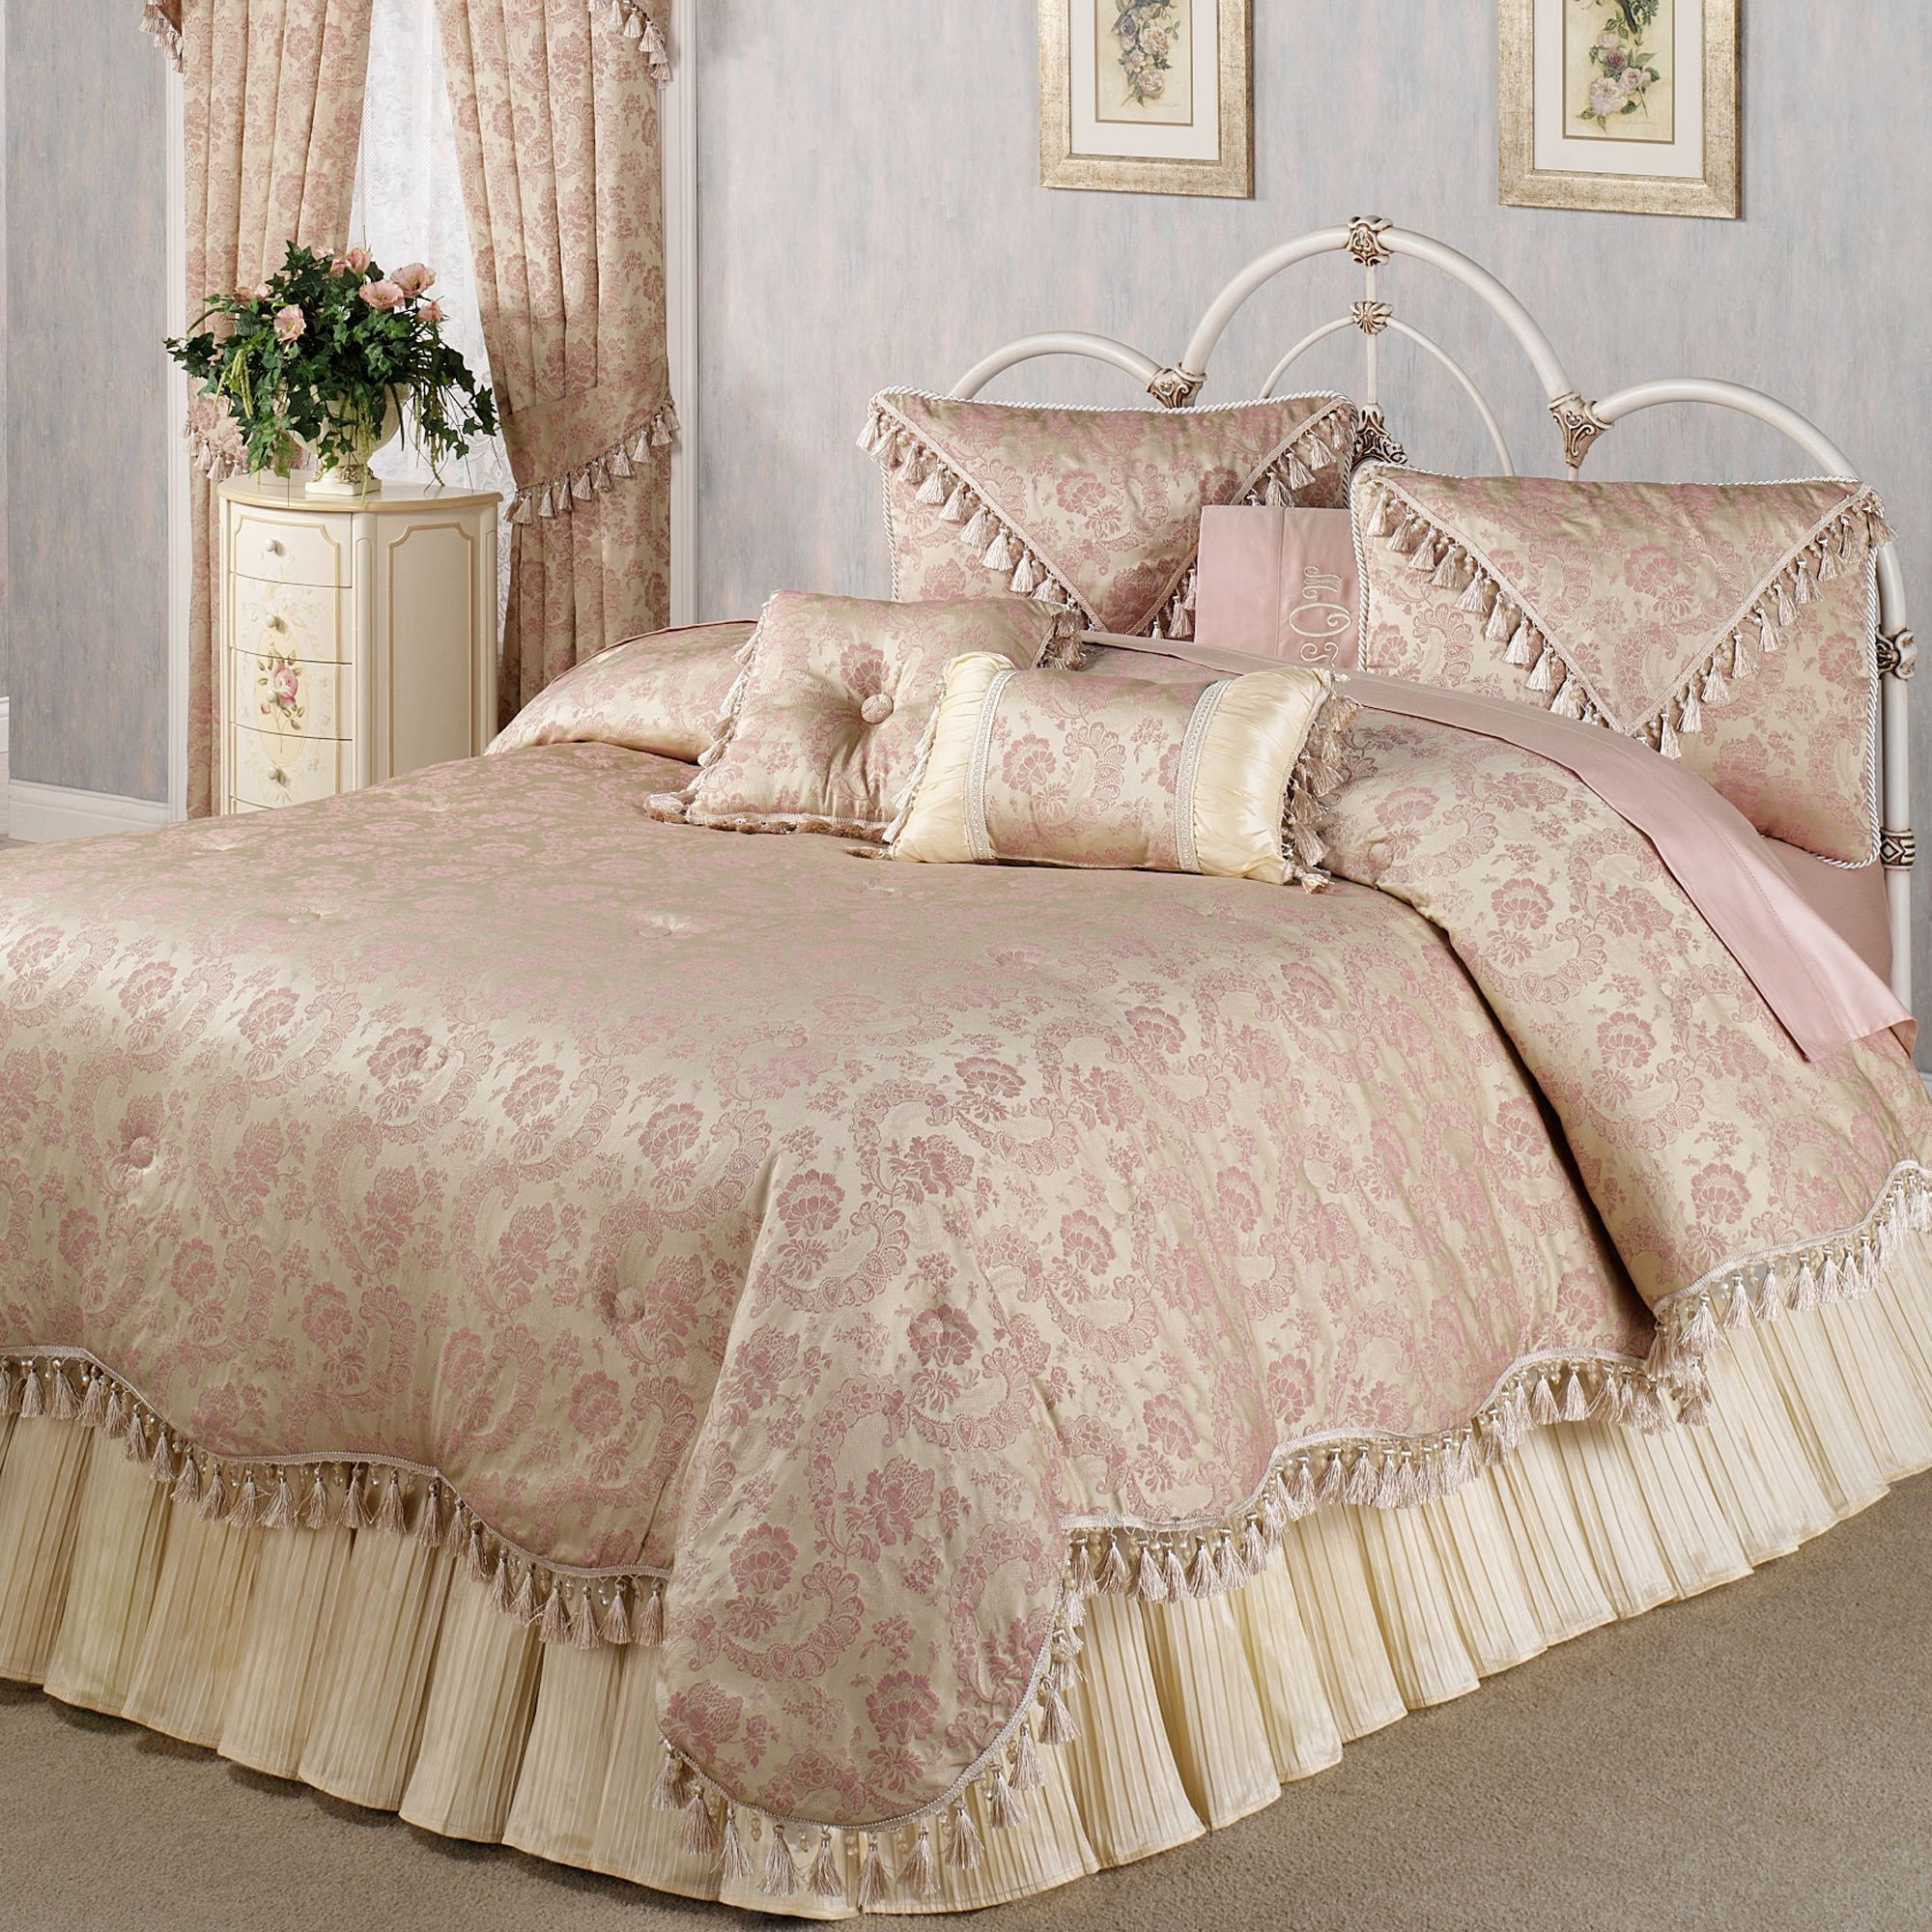 Chambery Romantic Fringed Queen forter Bedding